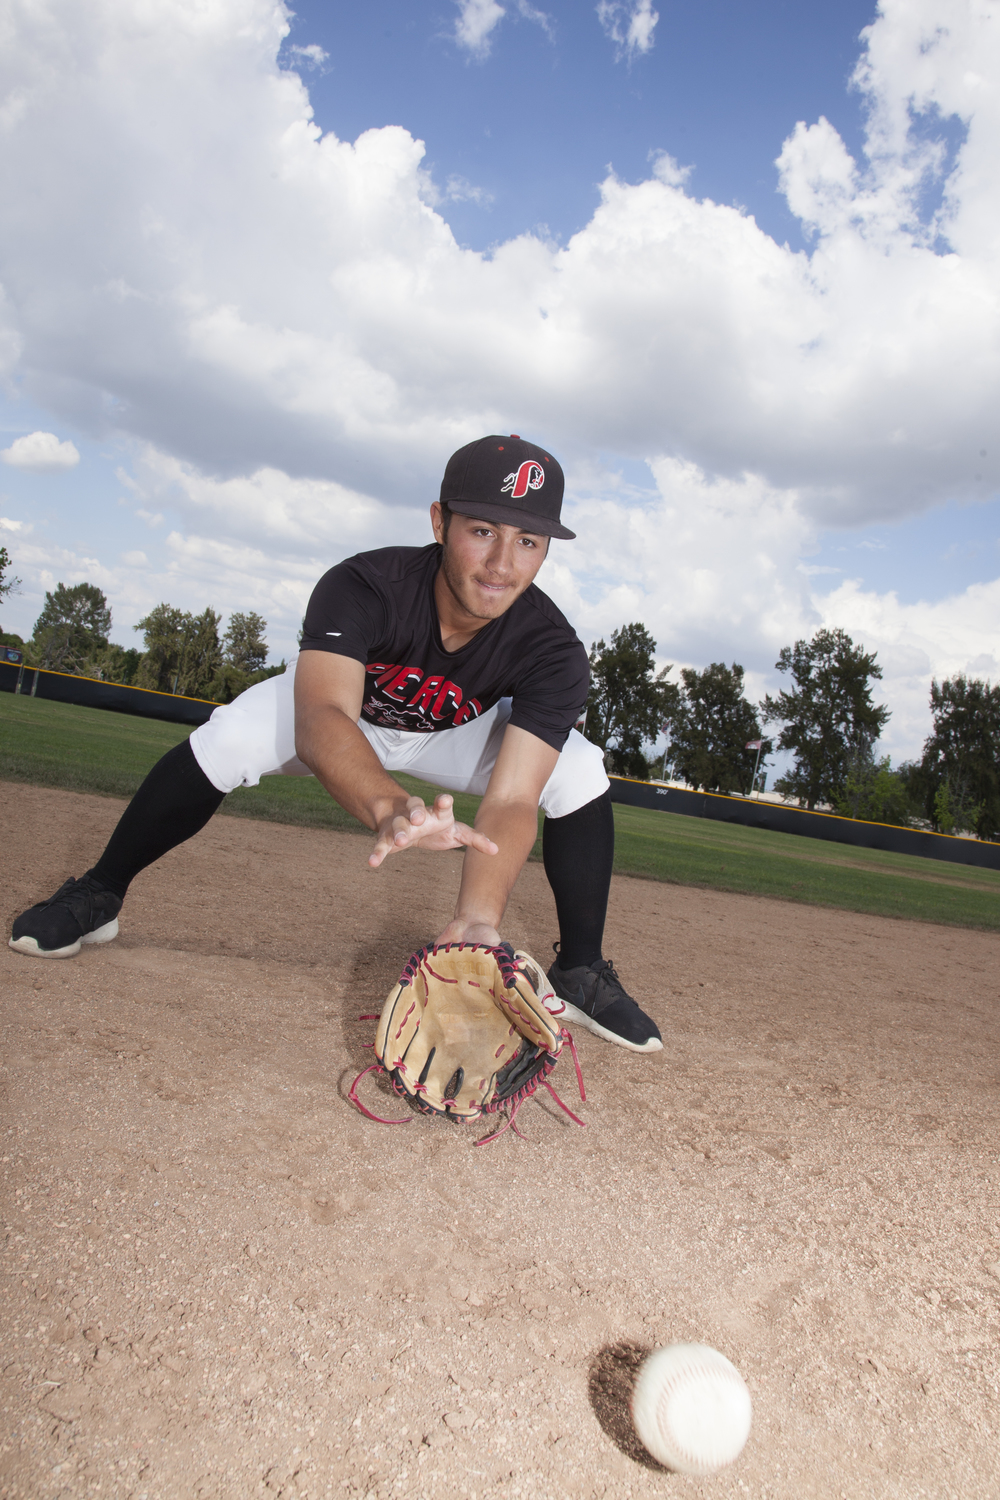 """It's so much more than just physical abilities. It's a lot of mental stuff and you have to be thinking after every pitch and action the whole game,"" said Jordan Abushala about playing the game of baseball. Abushala fields a ground ball at Joe Kelly Field in Woodland Hills, Calif. on Monday, April 11, 2016."